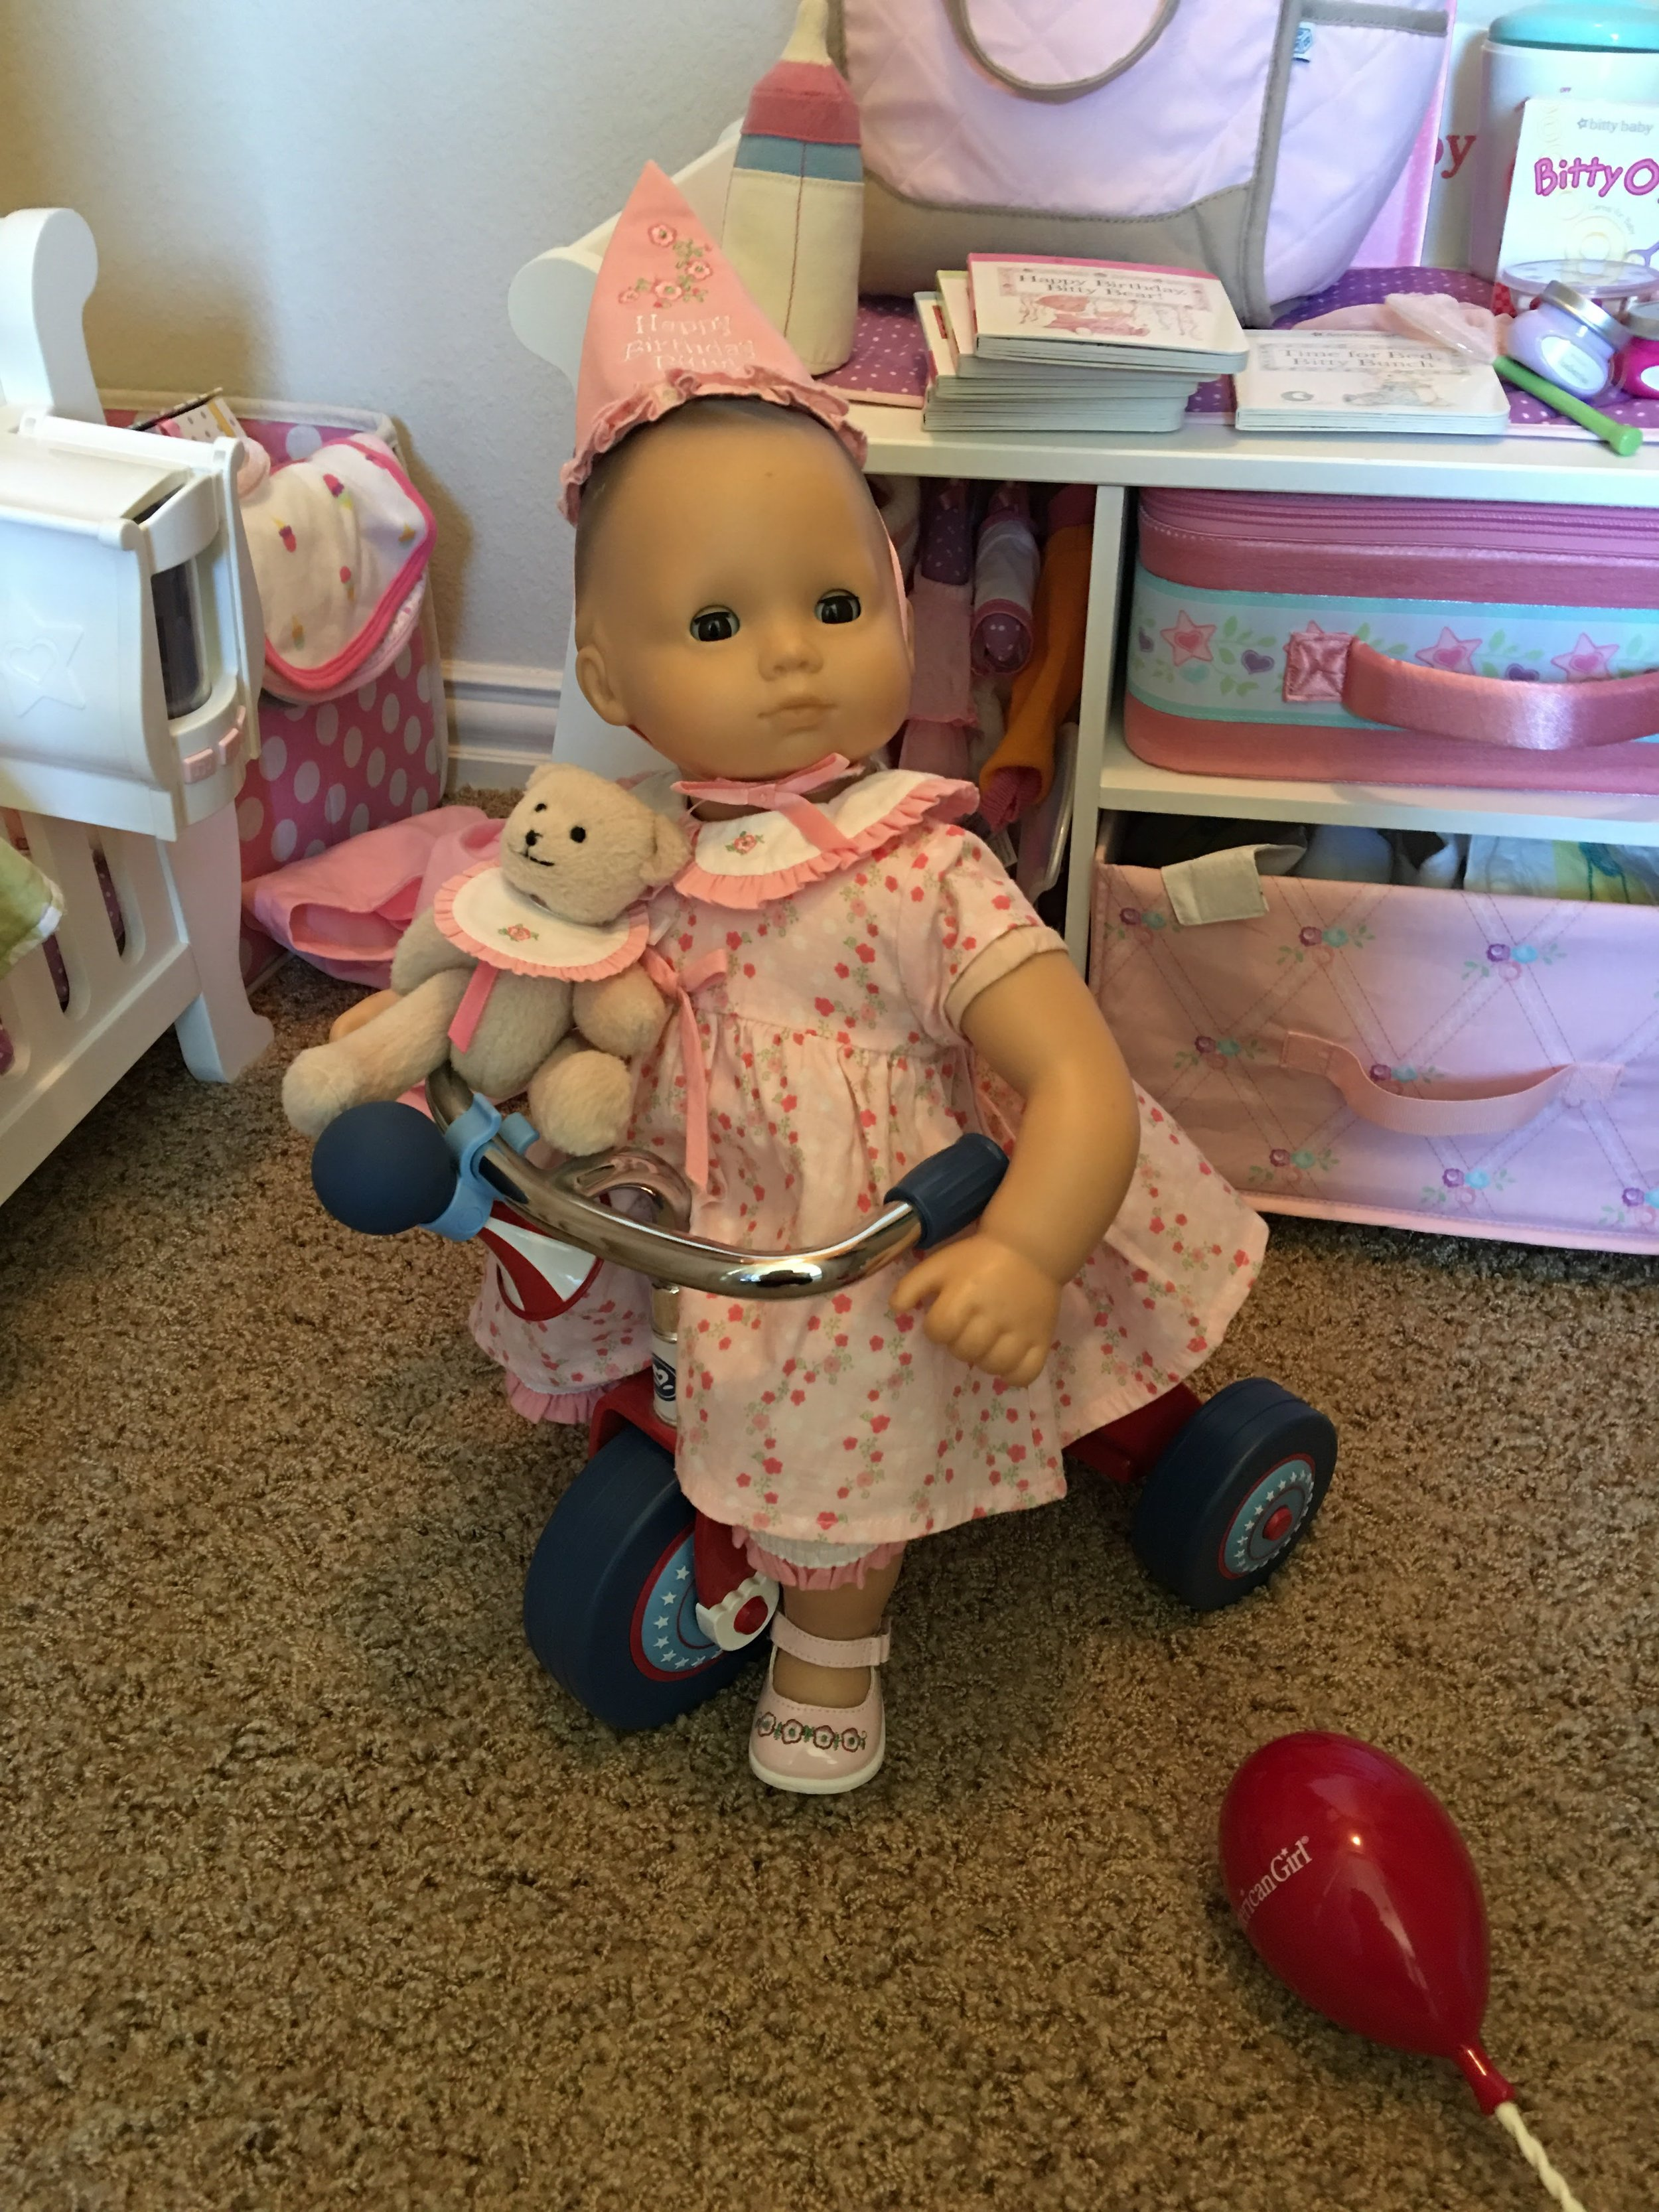 American Girl Bitty Baby on her tricycle in her (retired) birthday outfit!  A perfect example of timeless, classic toys and keeping little girls little!